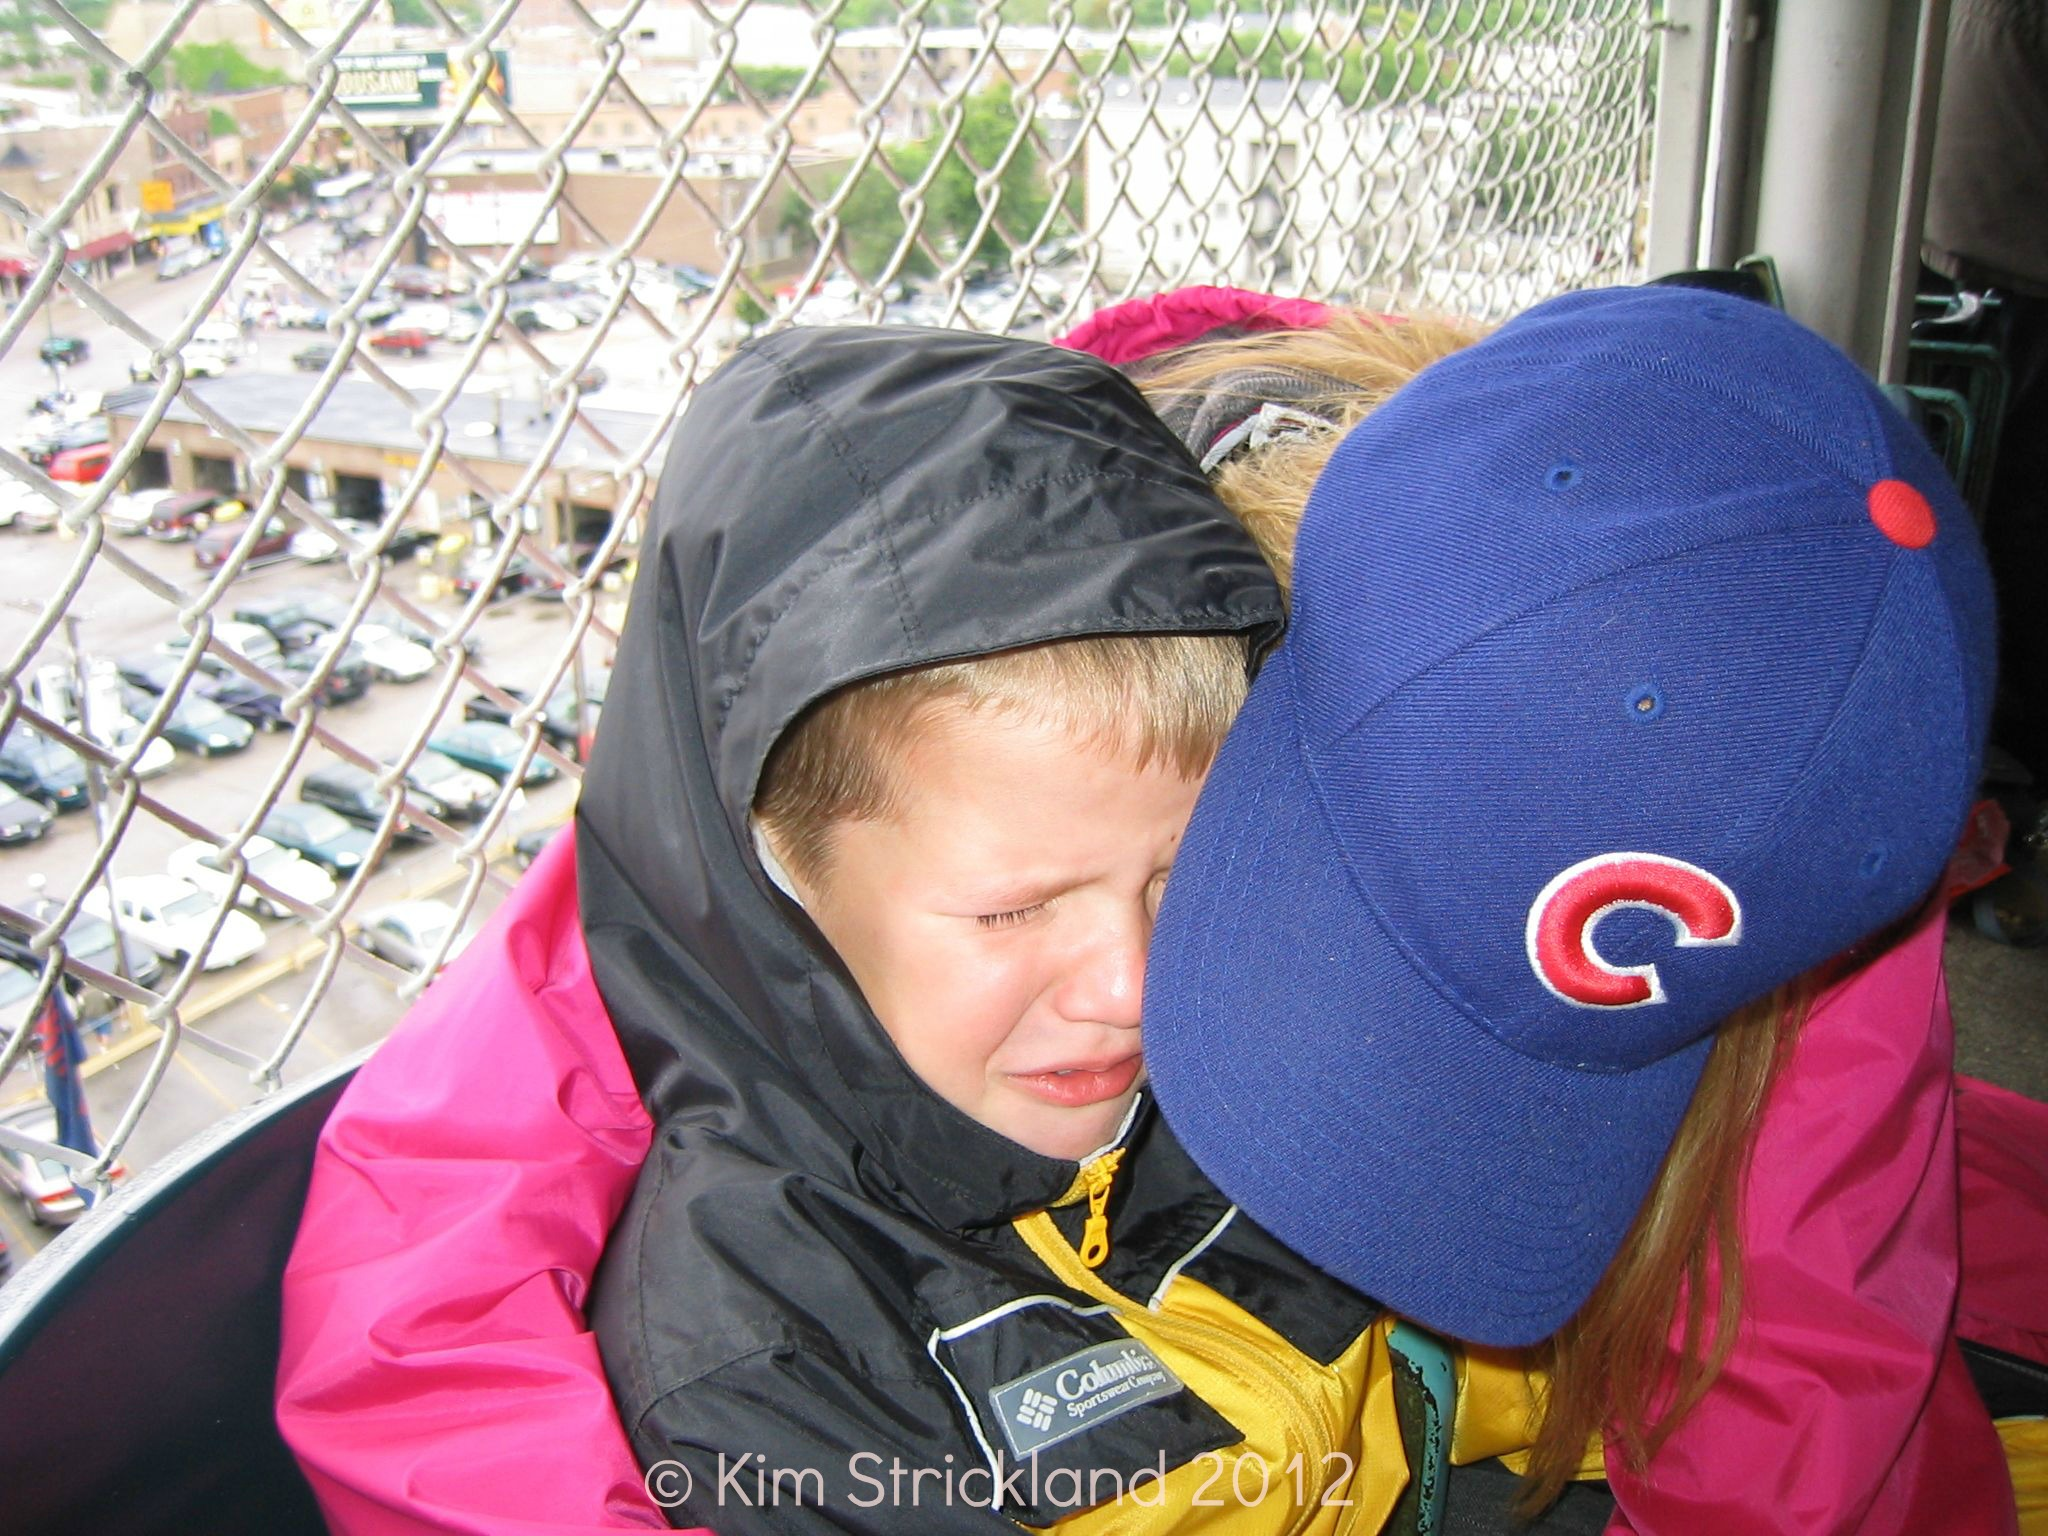 Two Cubs tickets for a family of five? Perfect!